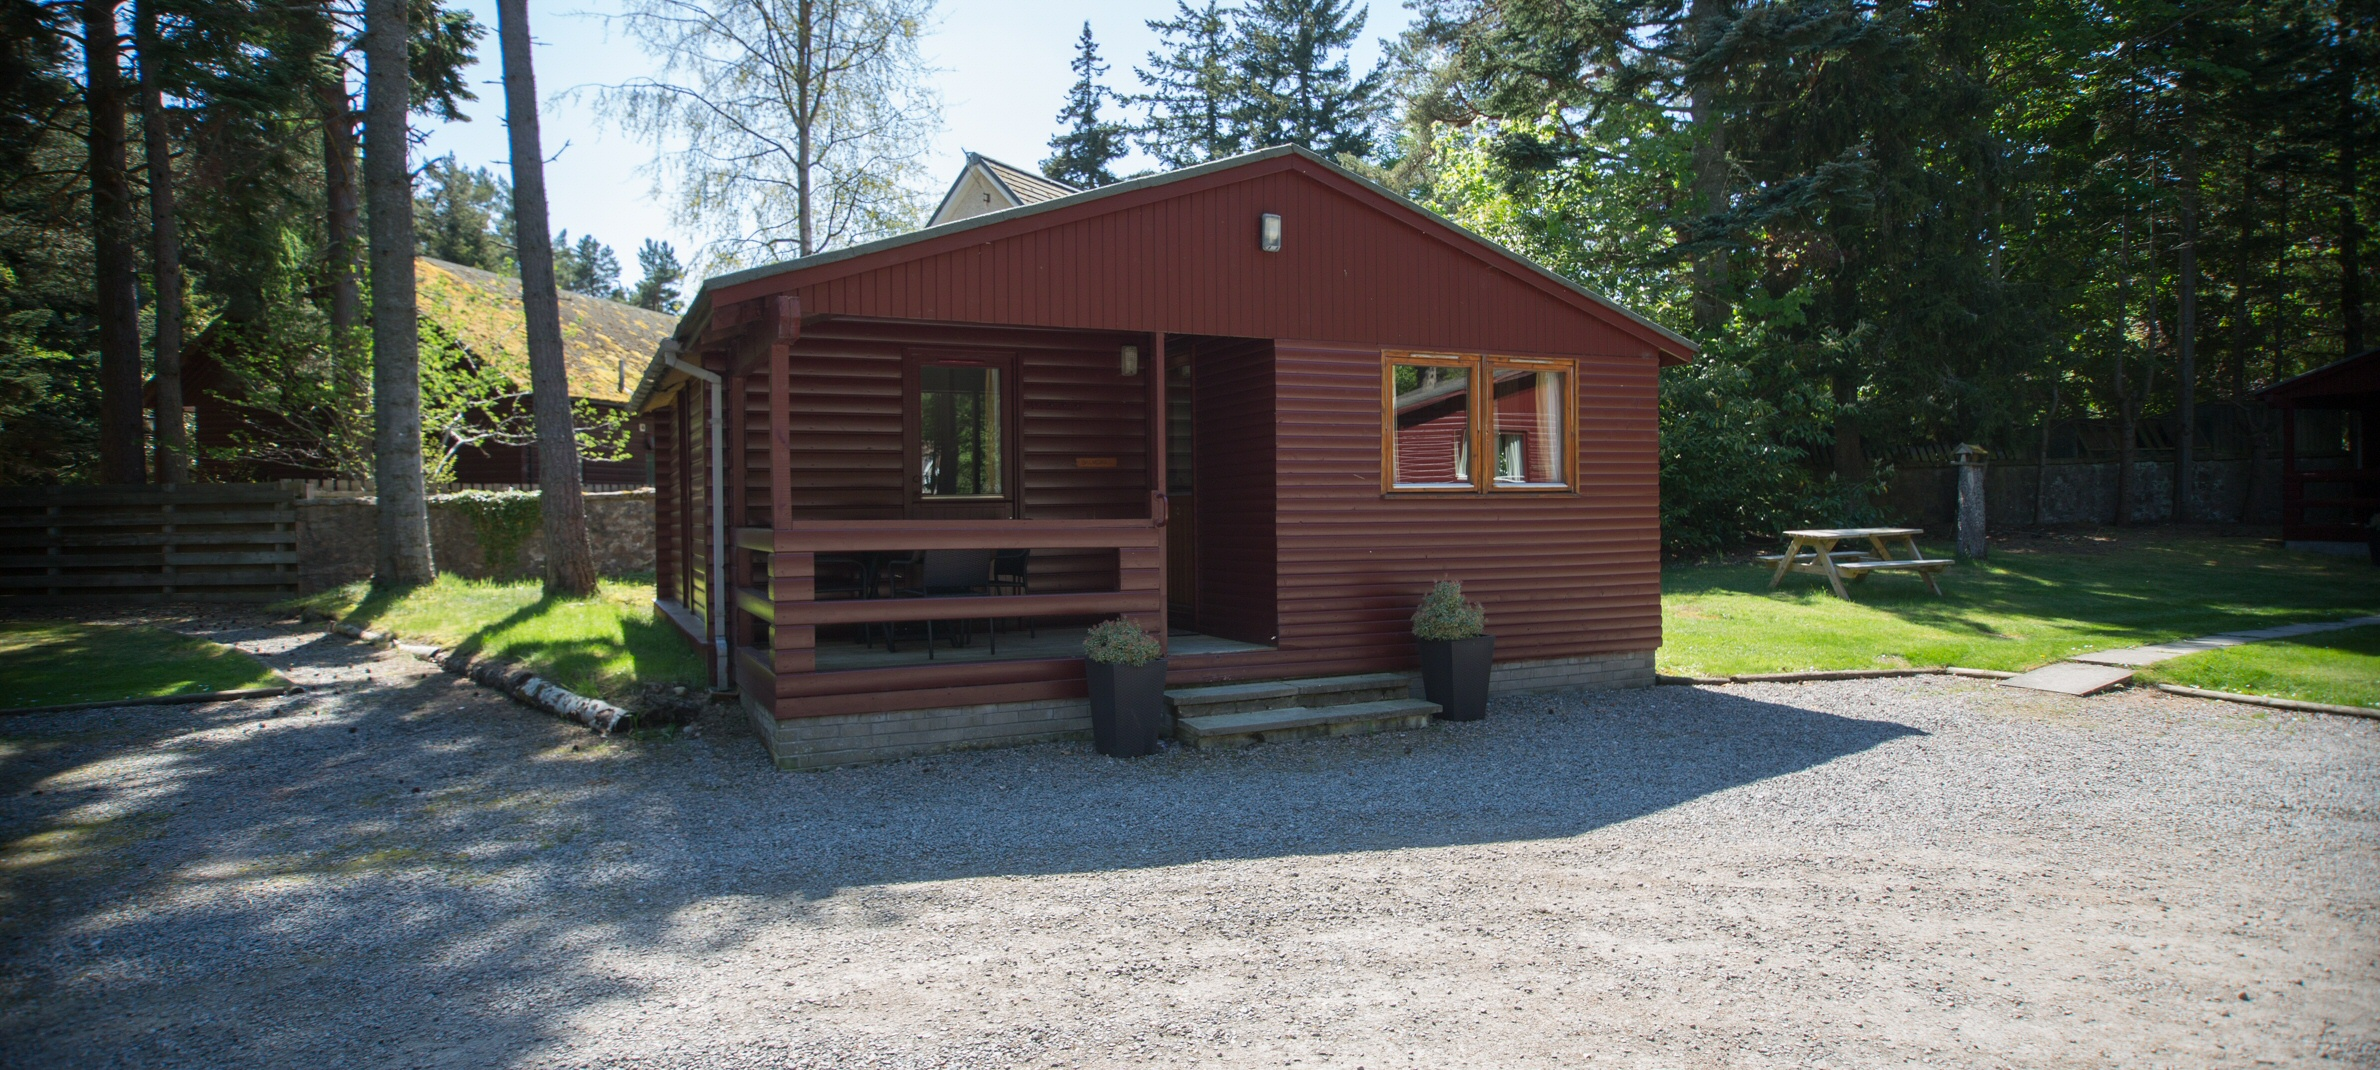 <h2>7 self-catering lodges in the heart of Ballater and Royal Deeside - Balmoral</h2><div class='slide-content'></div>